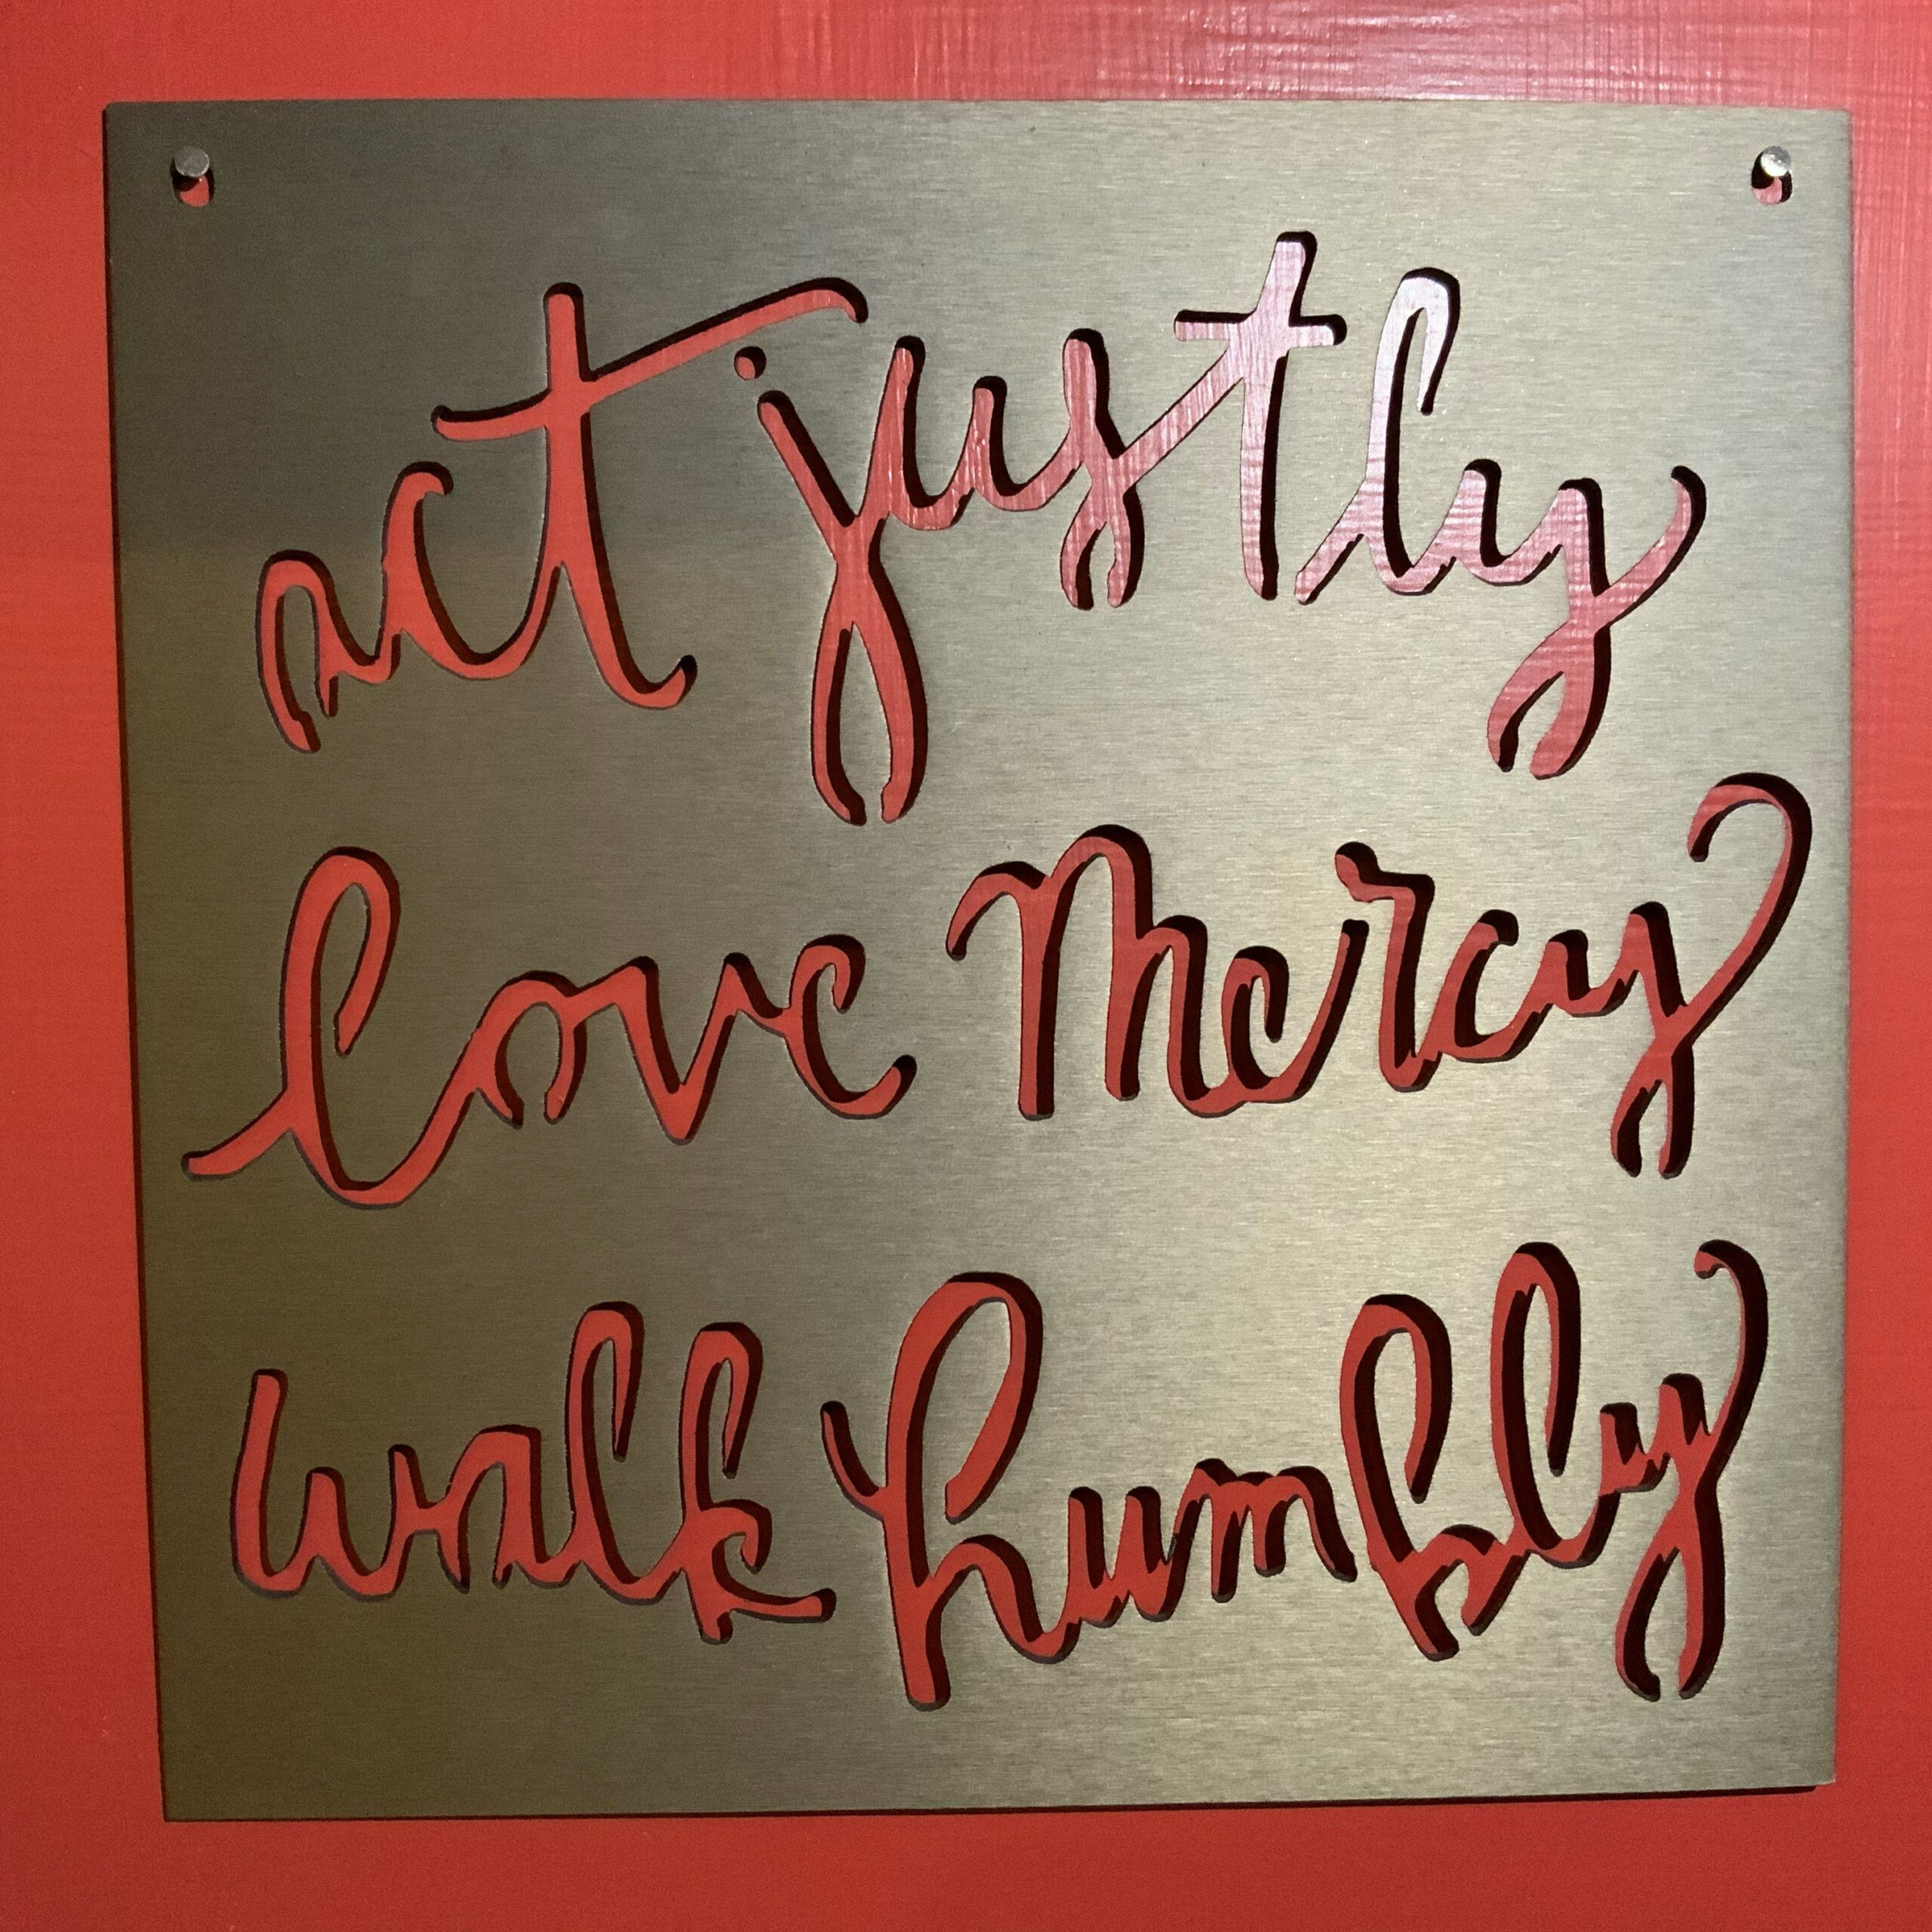 metal sign reading act justly, love mercy, walk humbly